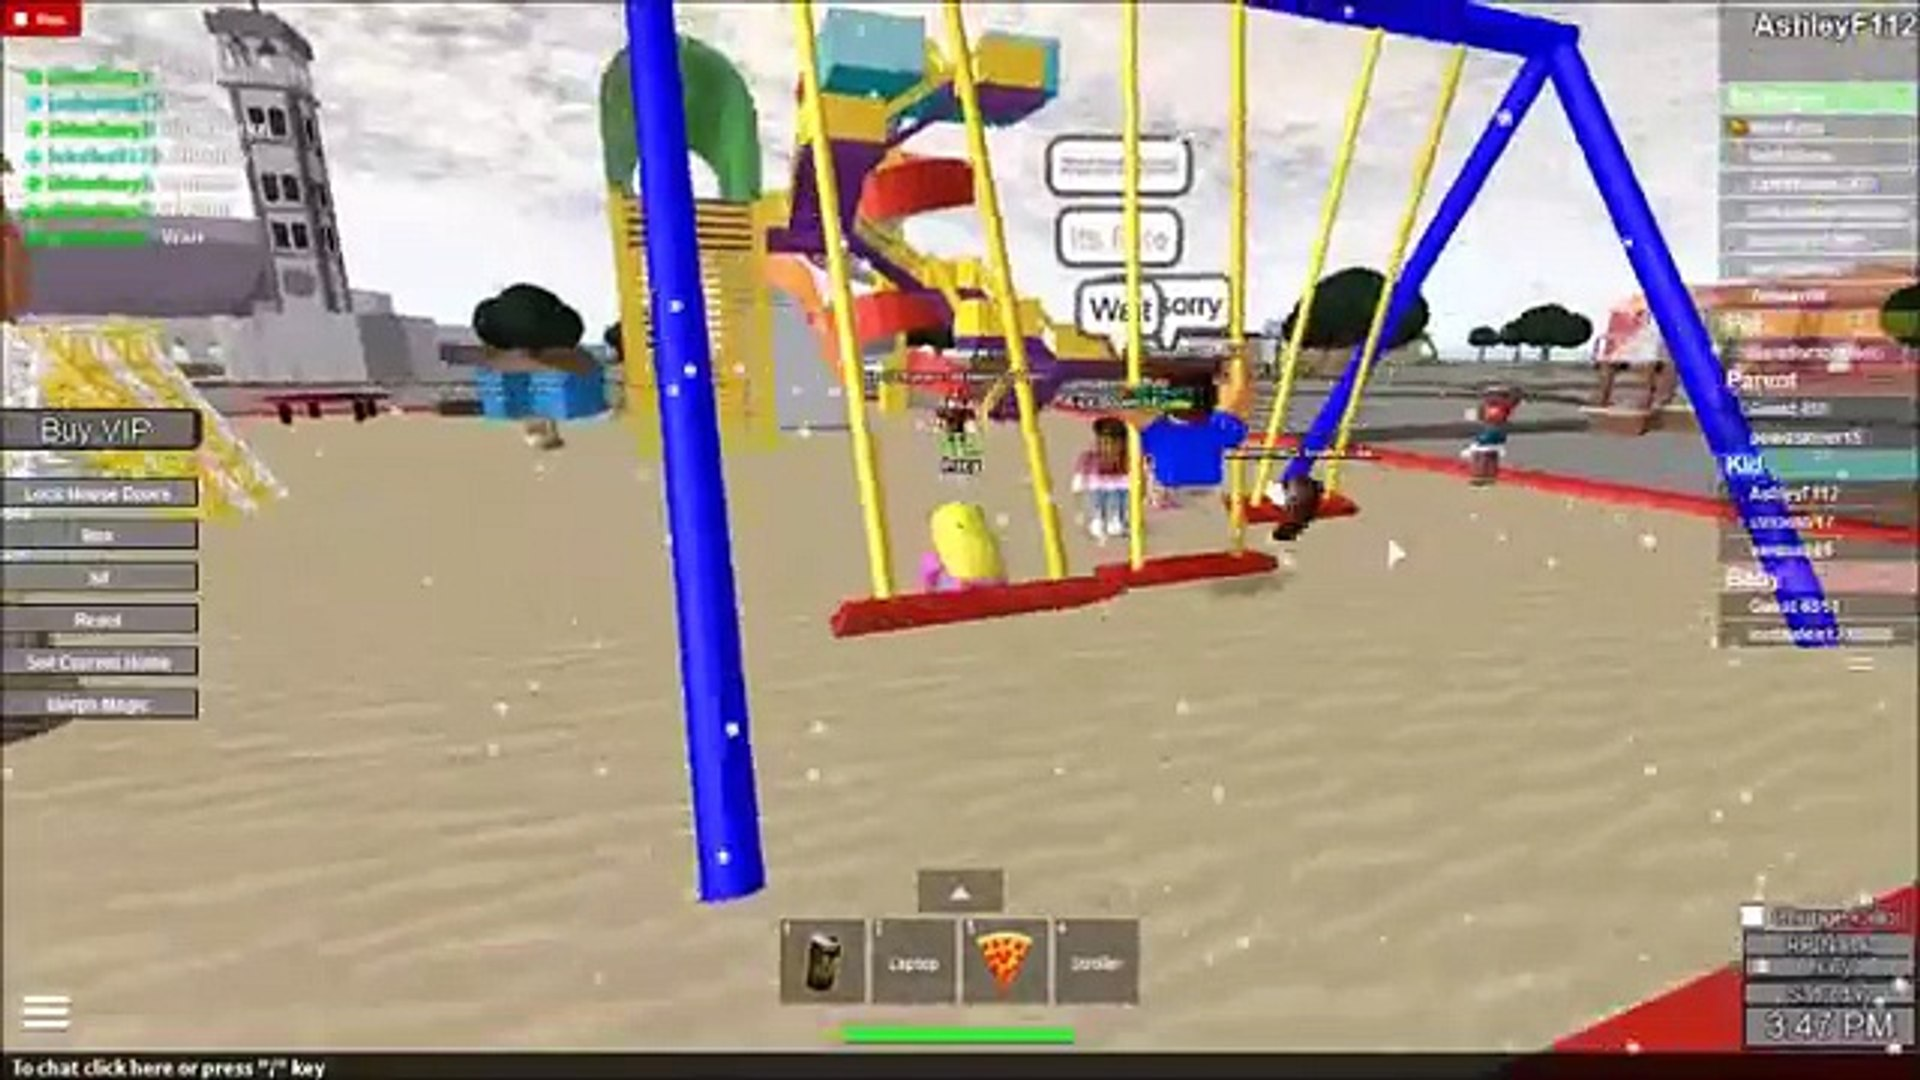 Roblox Adopt A Kid Game Roblox Roleplay Adopt And Raise A Cute Baby Video Dailymotion